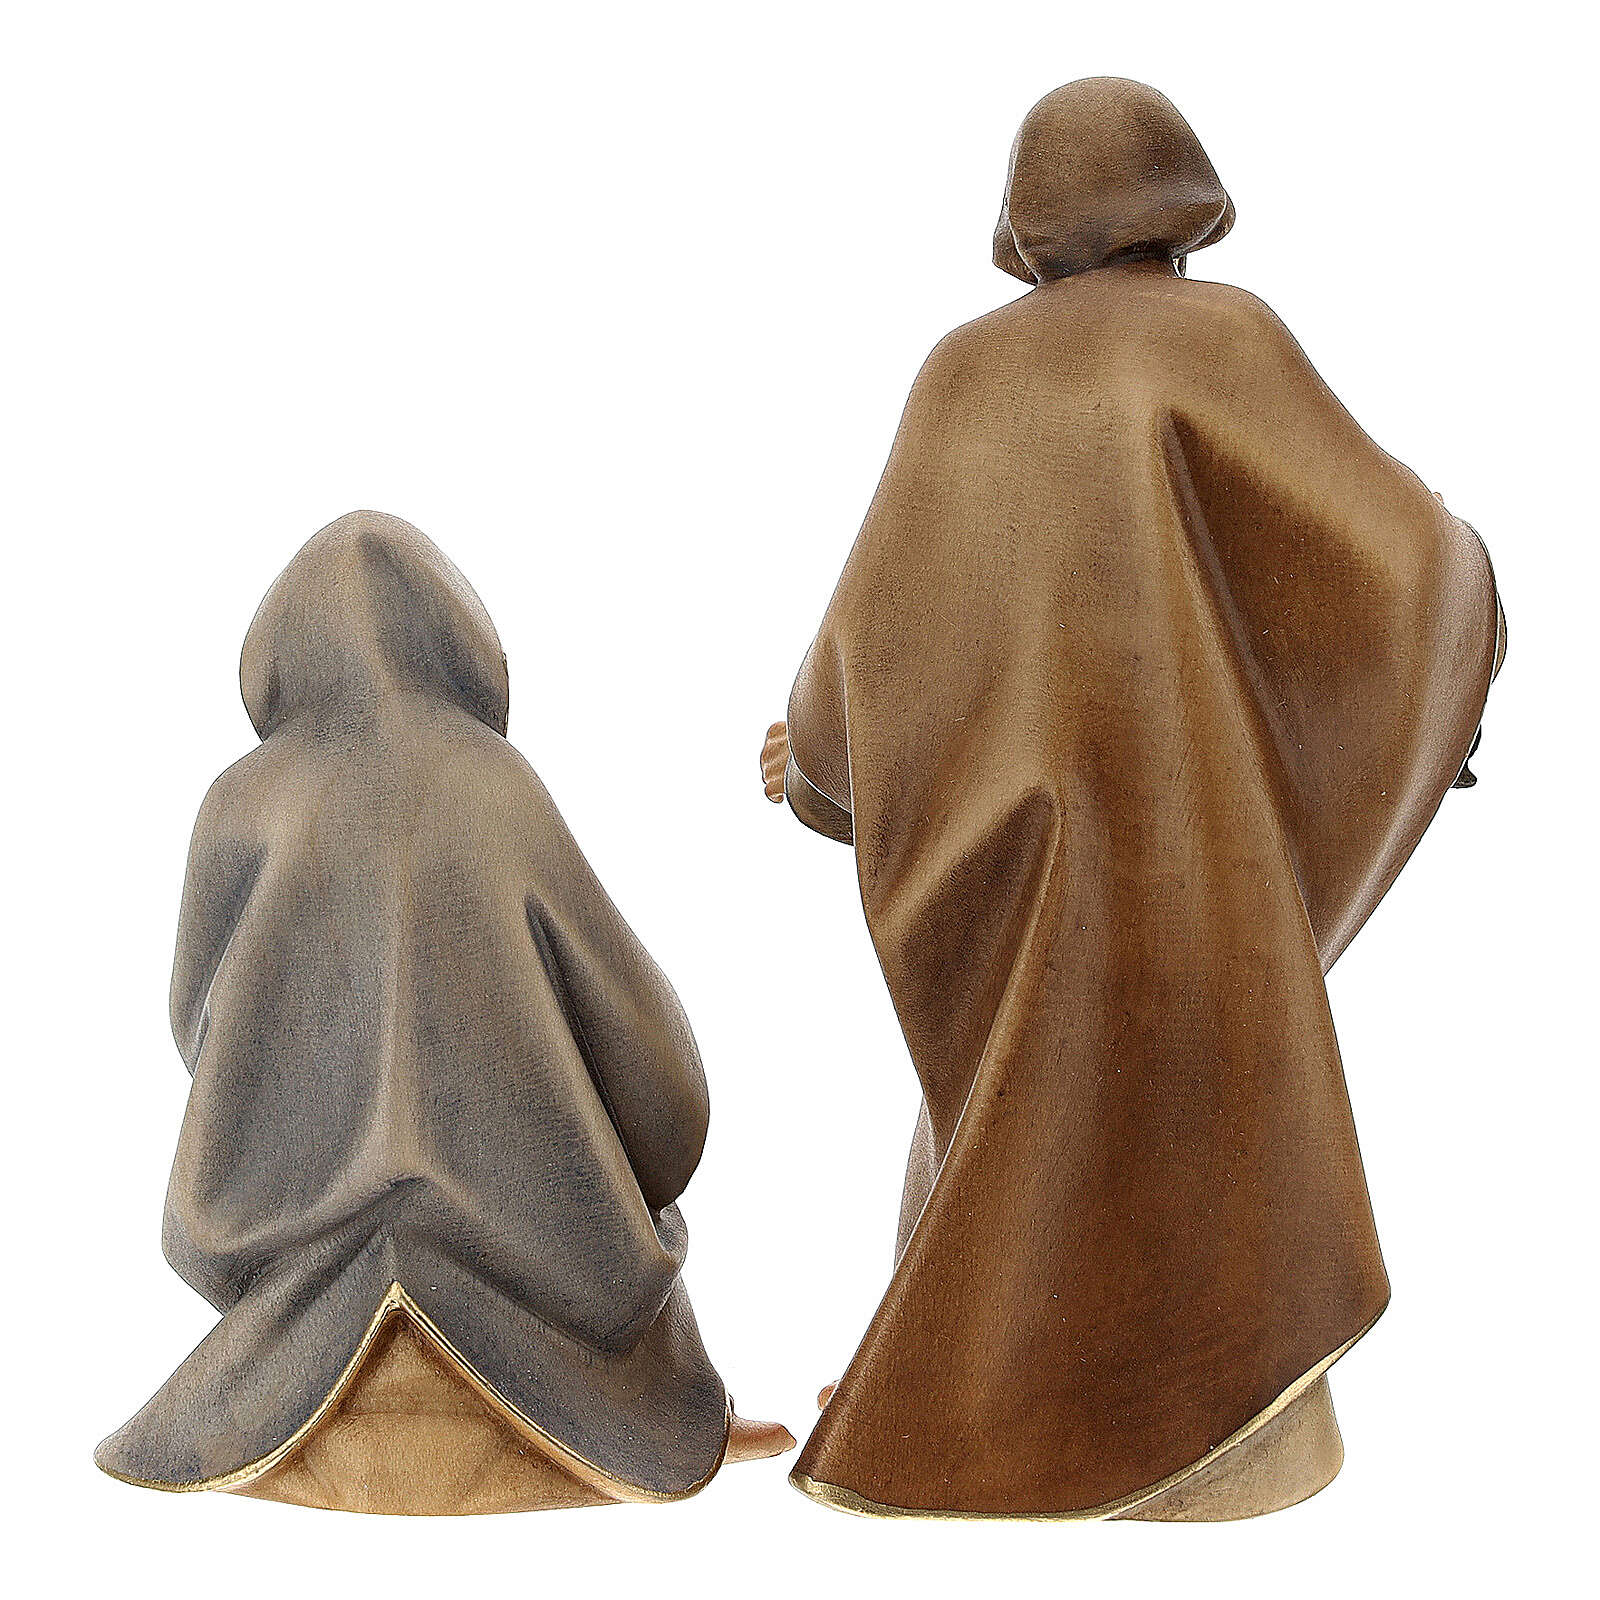 Nativity Scene in arched cave Original Redentore model in painted wood from Valgardena 12 cm - 9 pieces 4